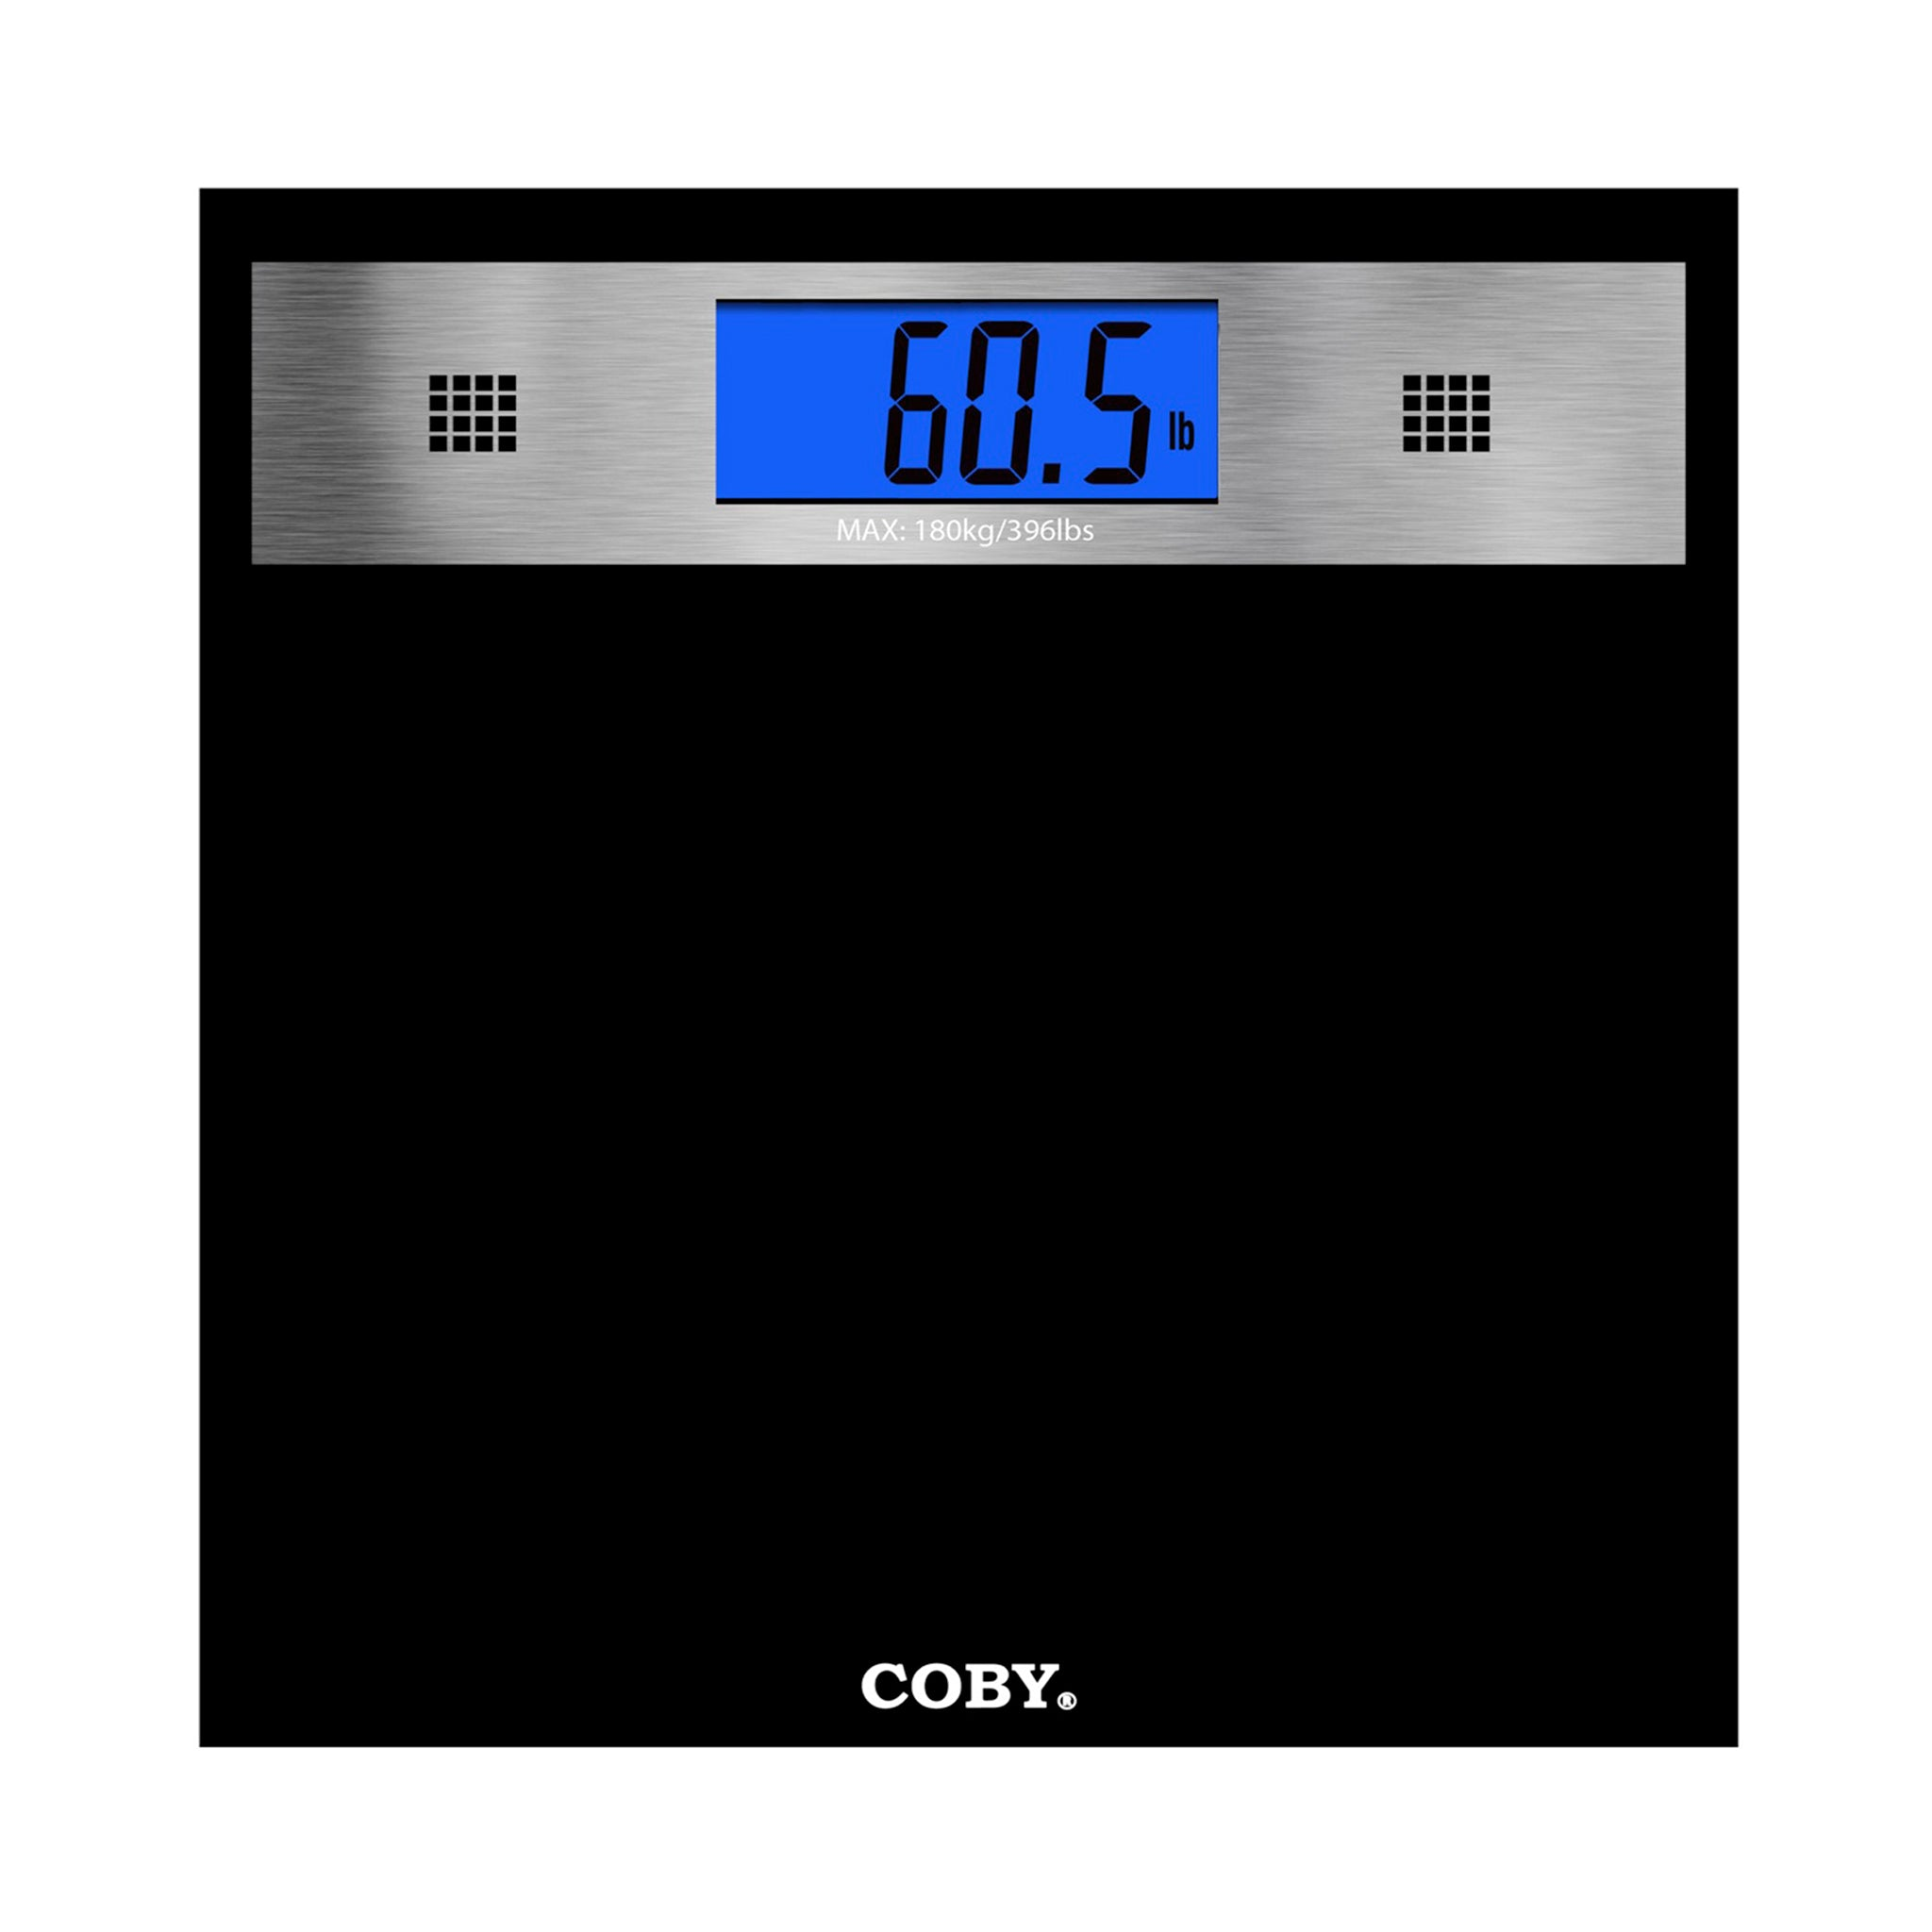 Merveilleux Digital Talking Bathroom Scale With Backlit Display